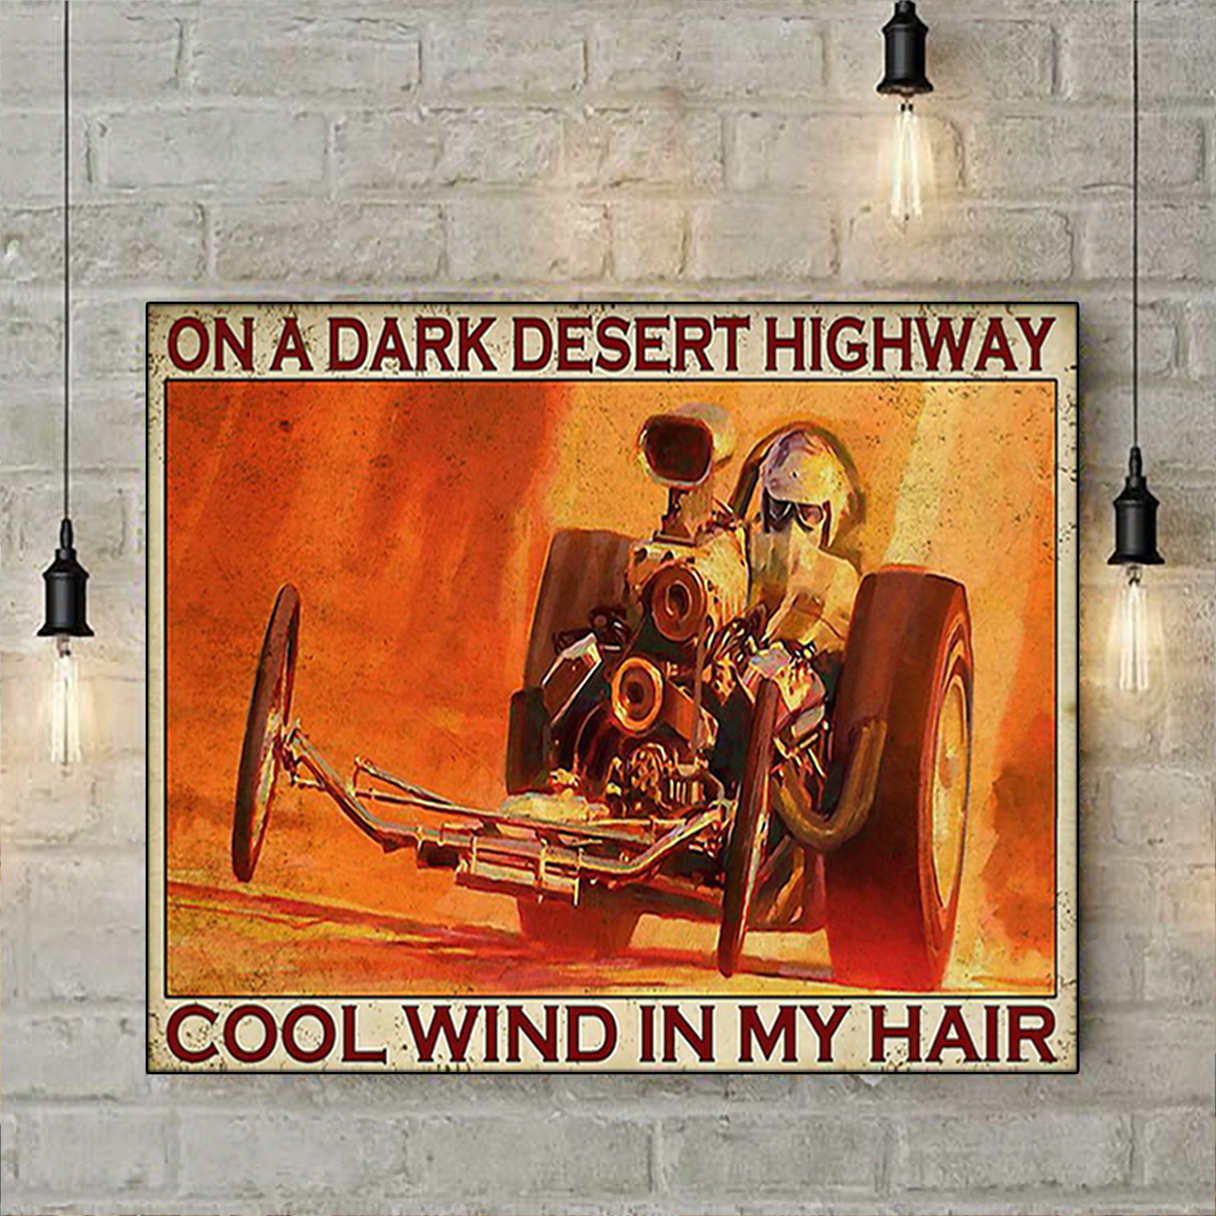 Drag racing on a dark desert highway cool wind in my hair poster A2